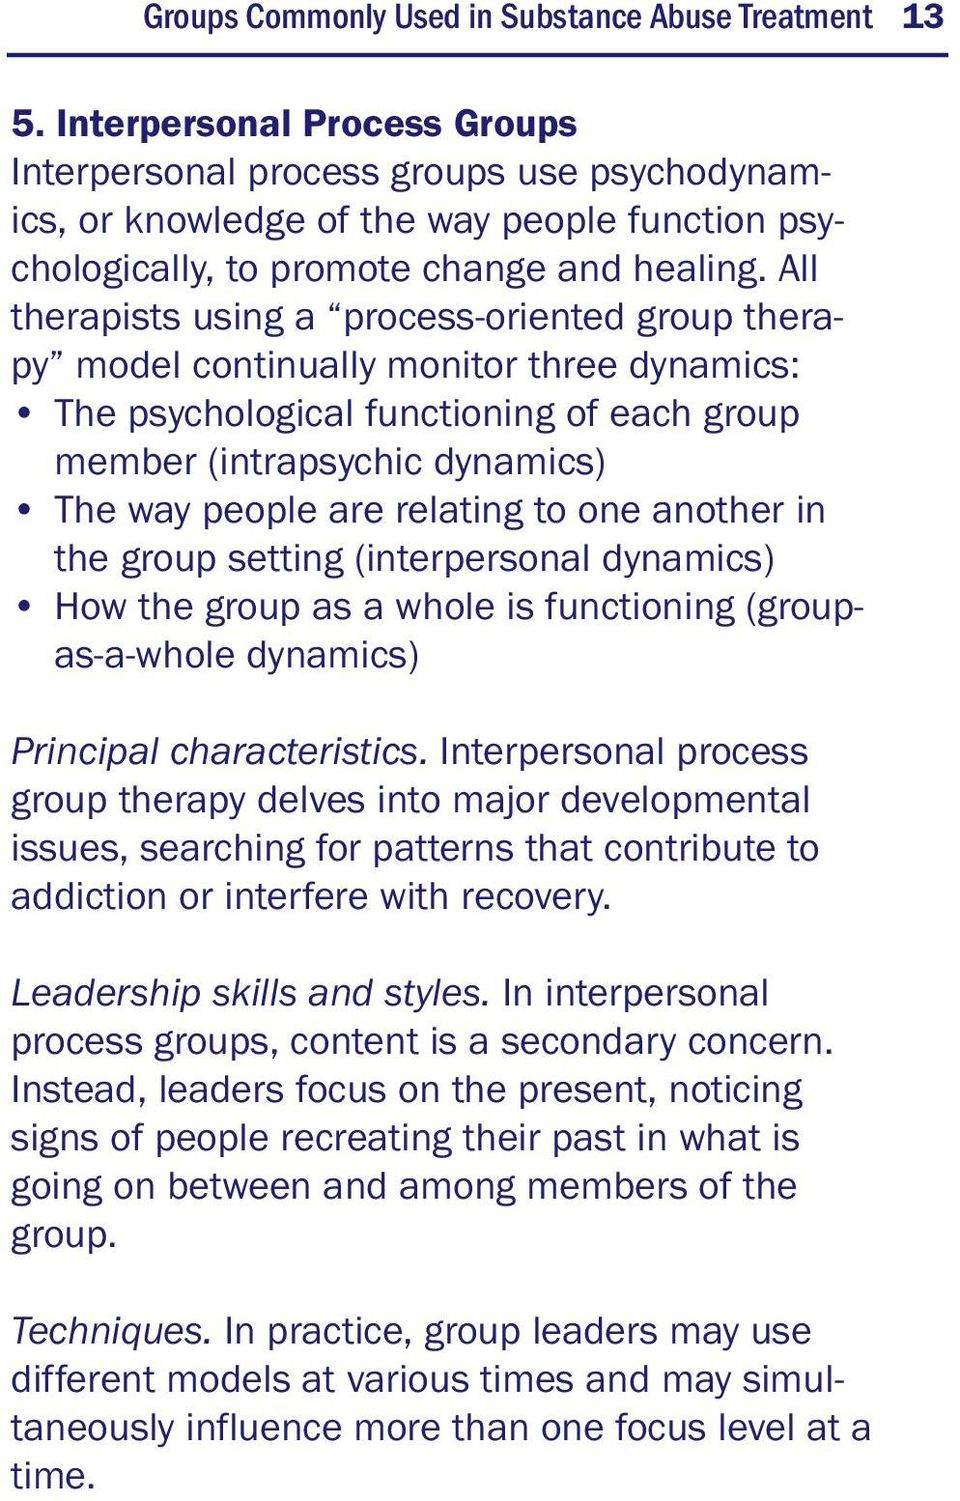 All therapists using a process-oriented group therapy model continually monitor three dynamics: The psychological functioning of each group member (intrapsychic dynamics) The way people are relating